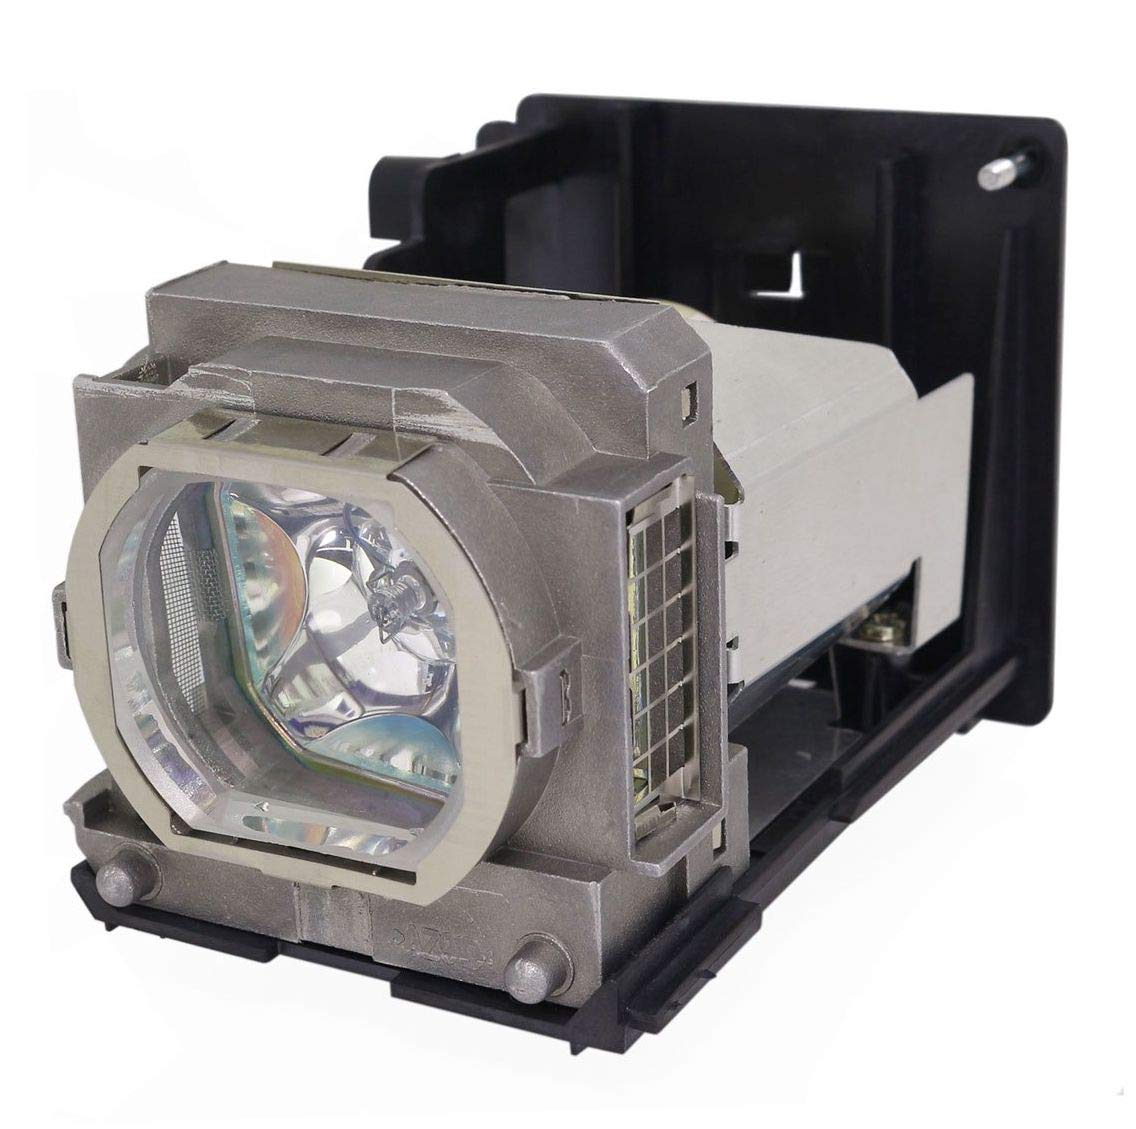 VLT-HC6800LP 915D116O13 VLTHC6800LP Professional Replacement Projector Lamp With Mitsubishi HC6800 HC6800U Projectors